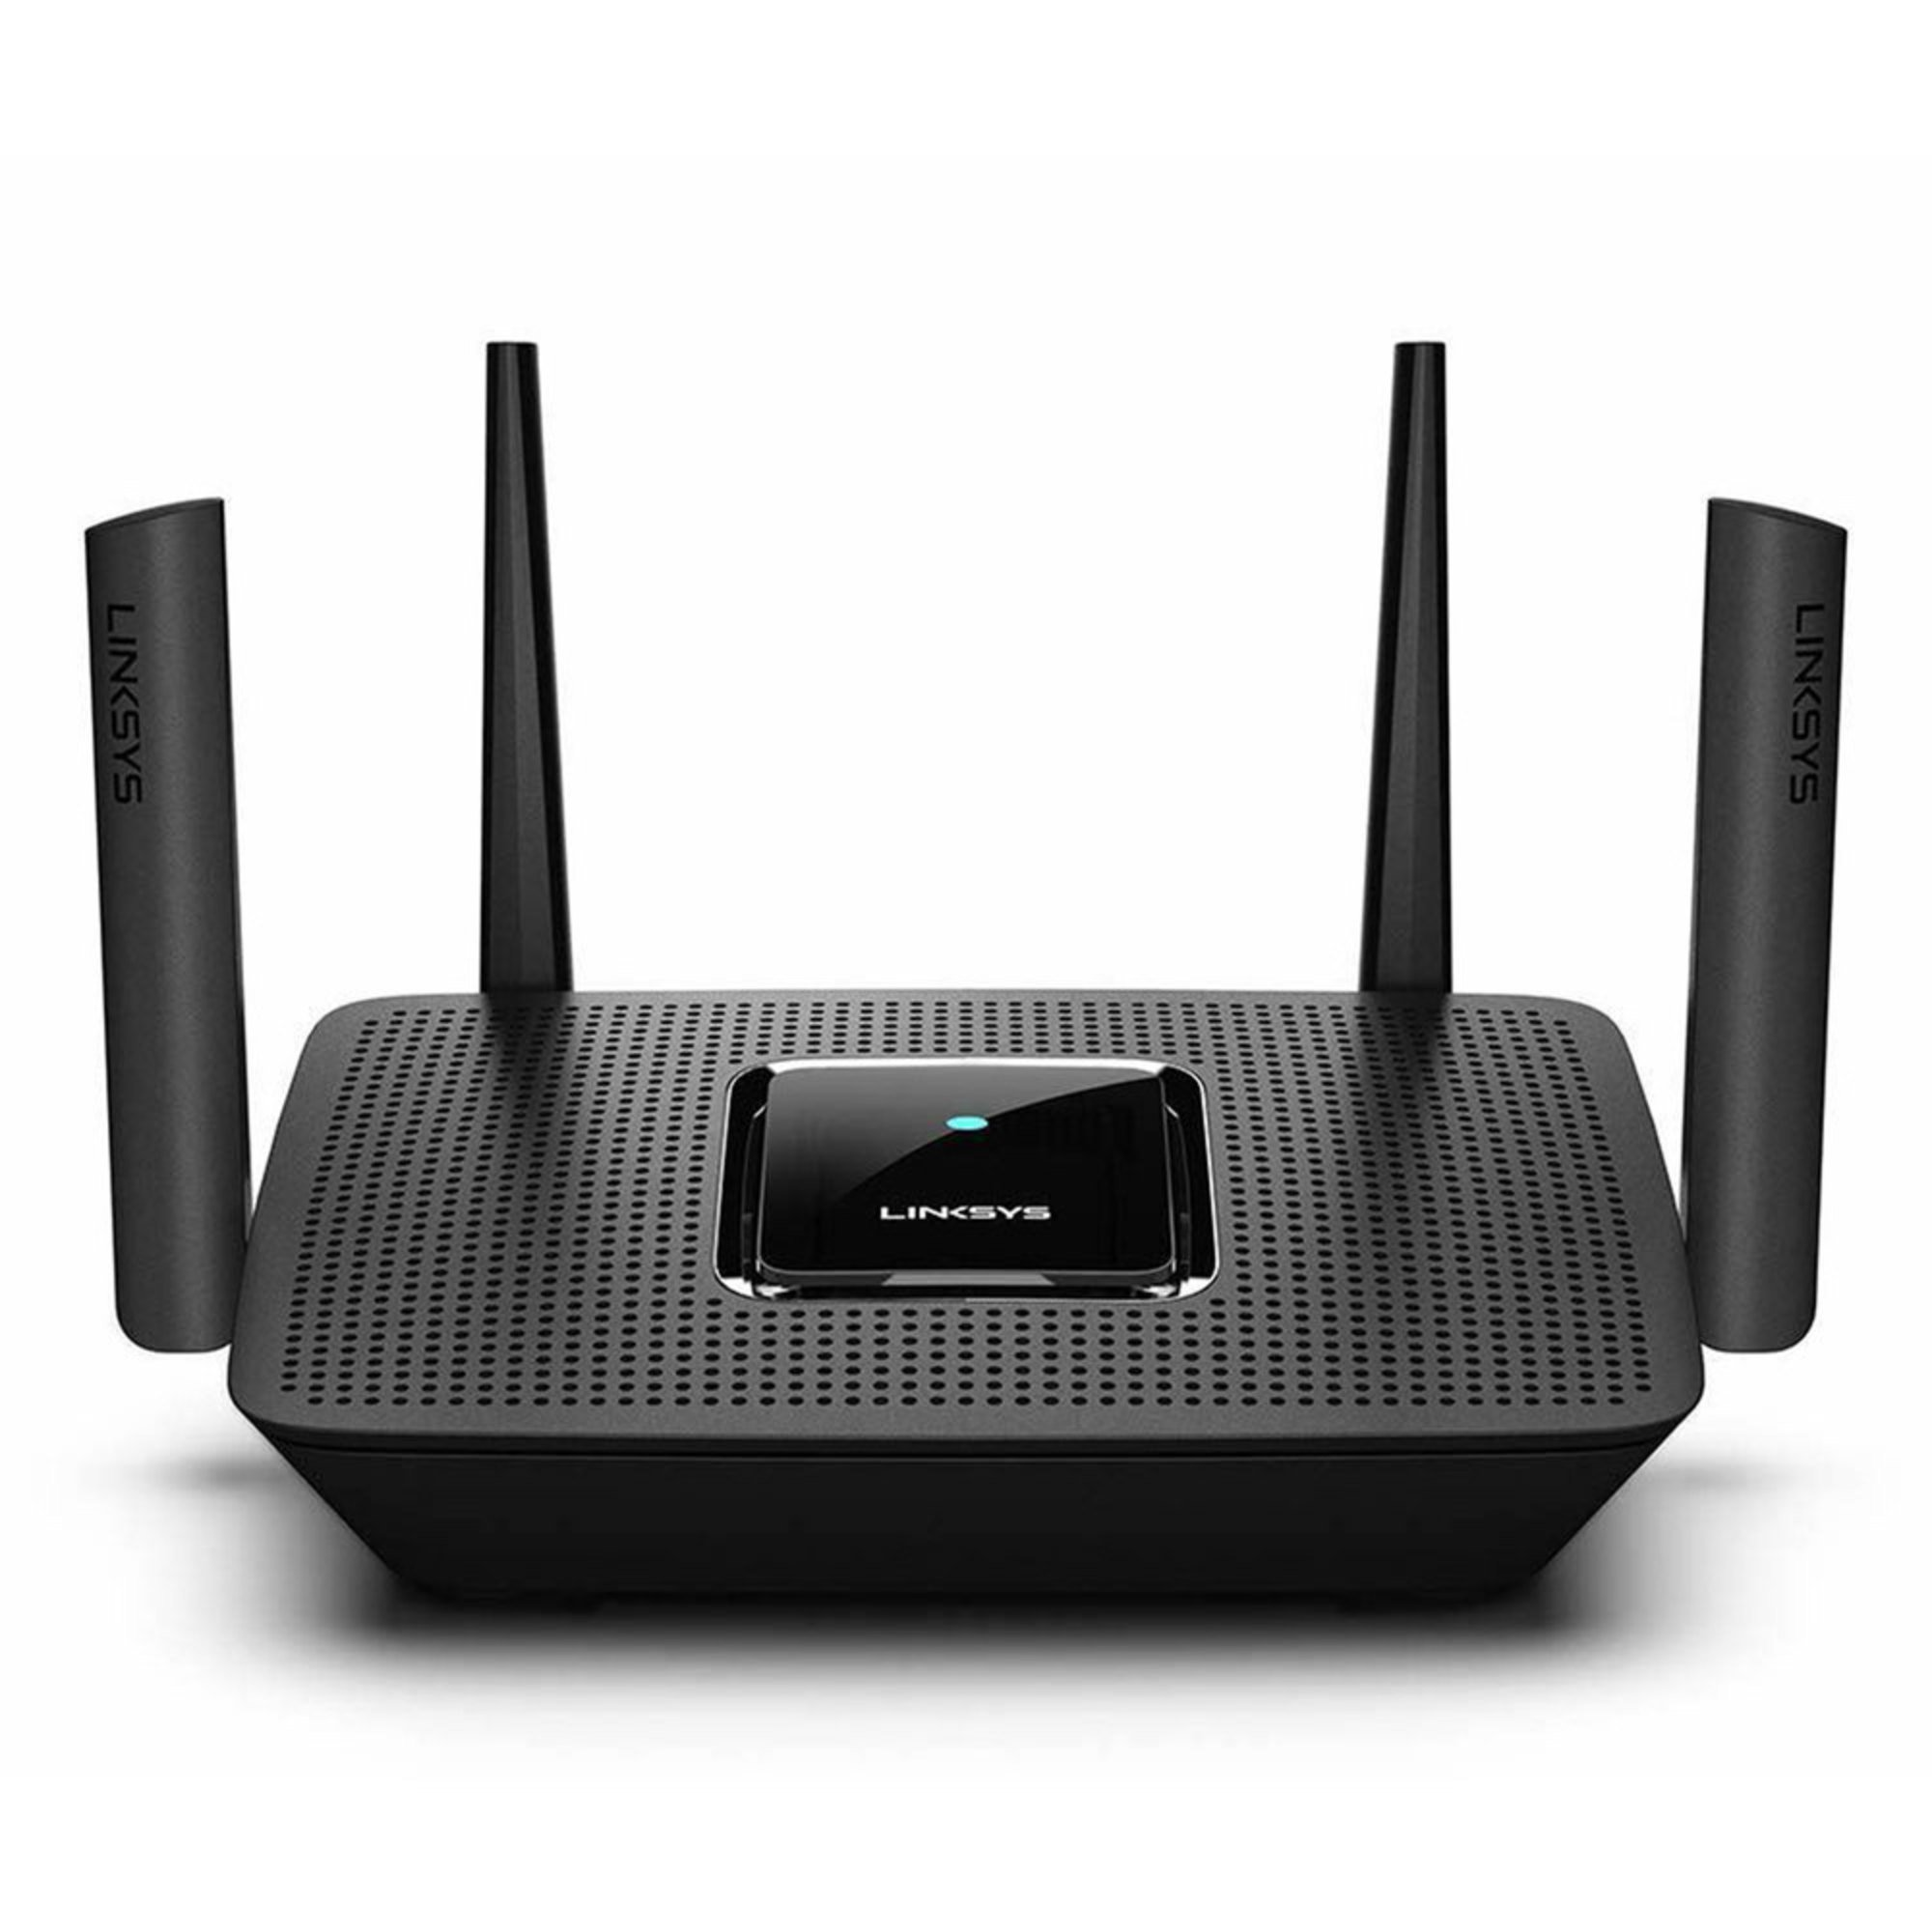 Linksys AC2200 Tri-Band Mesh WiFi Router